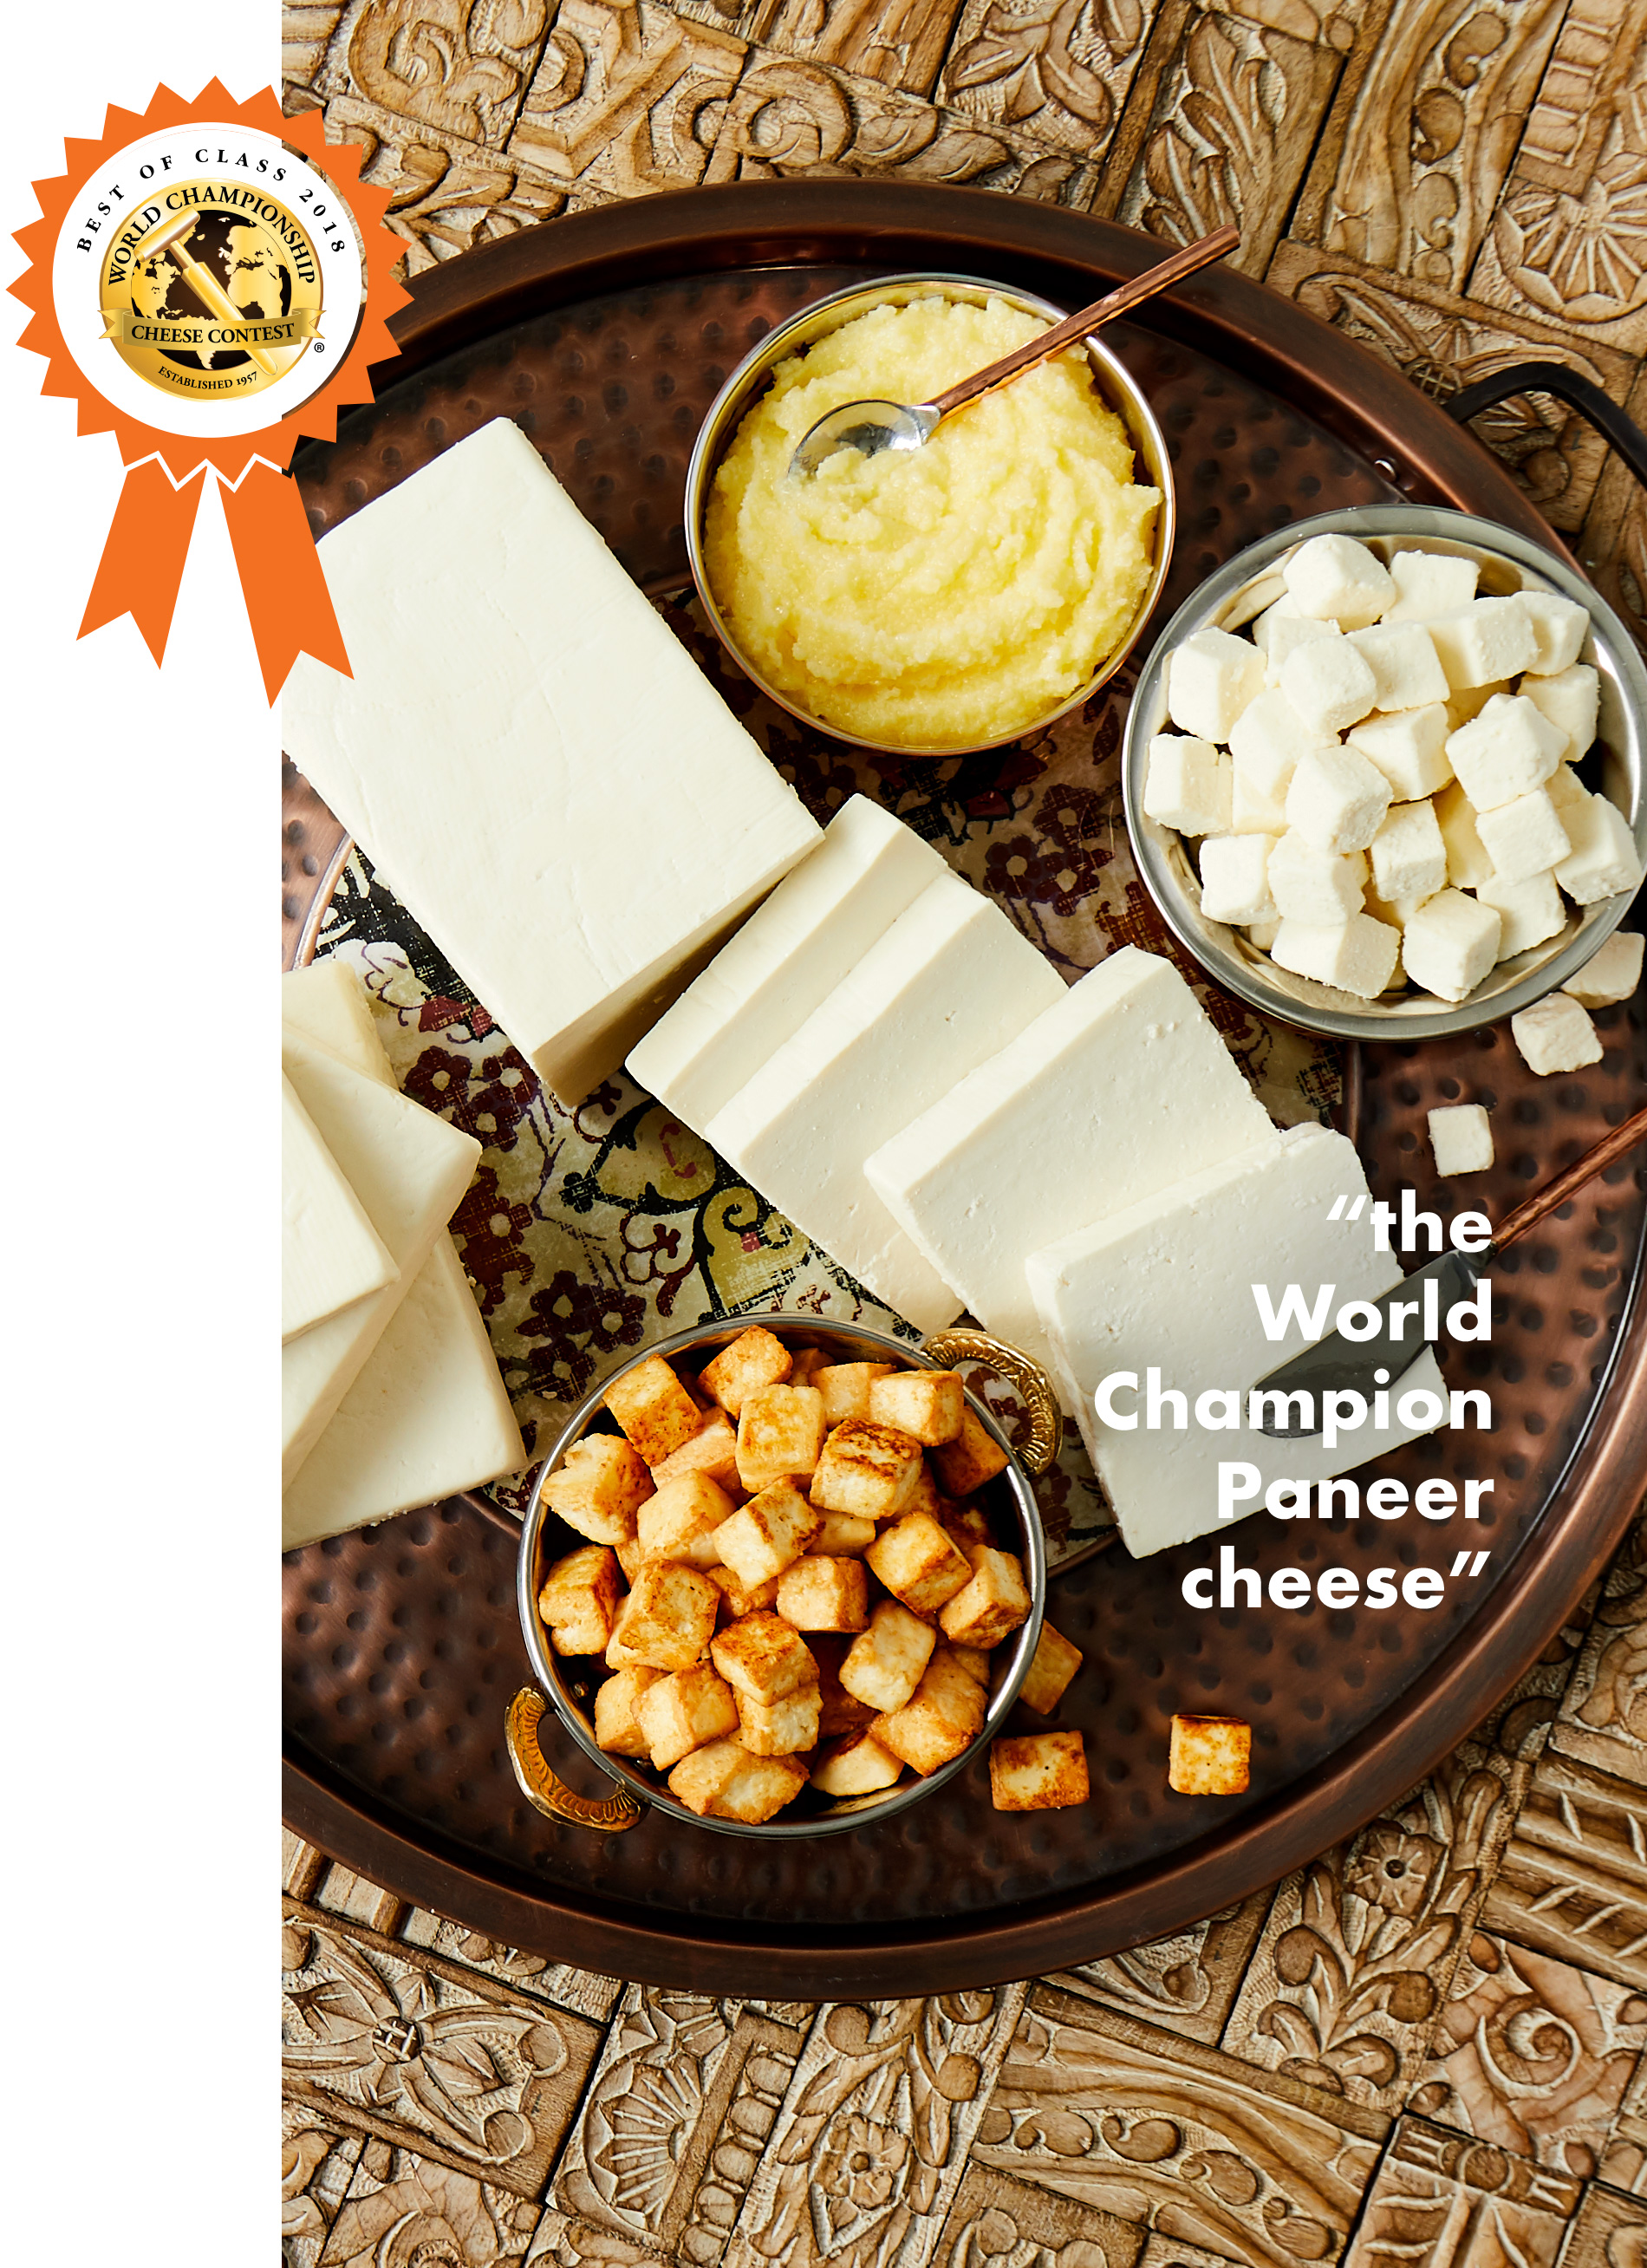 paneer-specialty-cheese.jpg